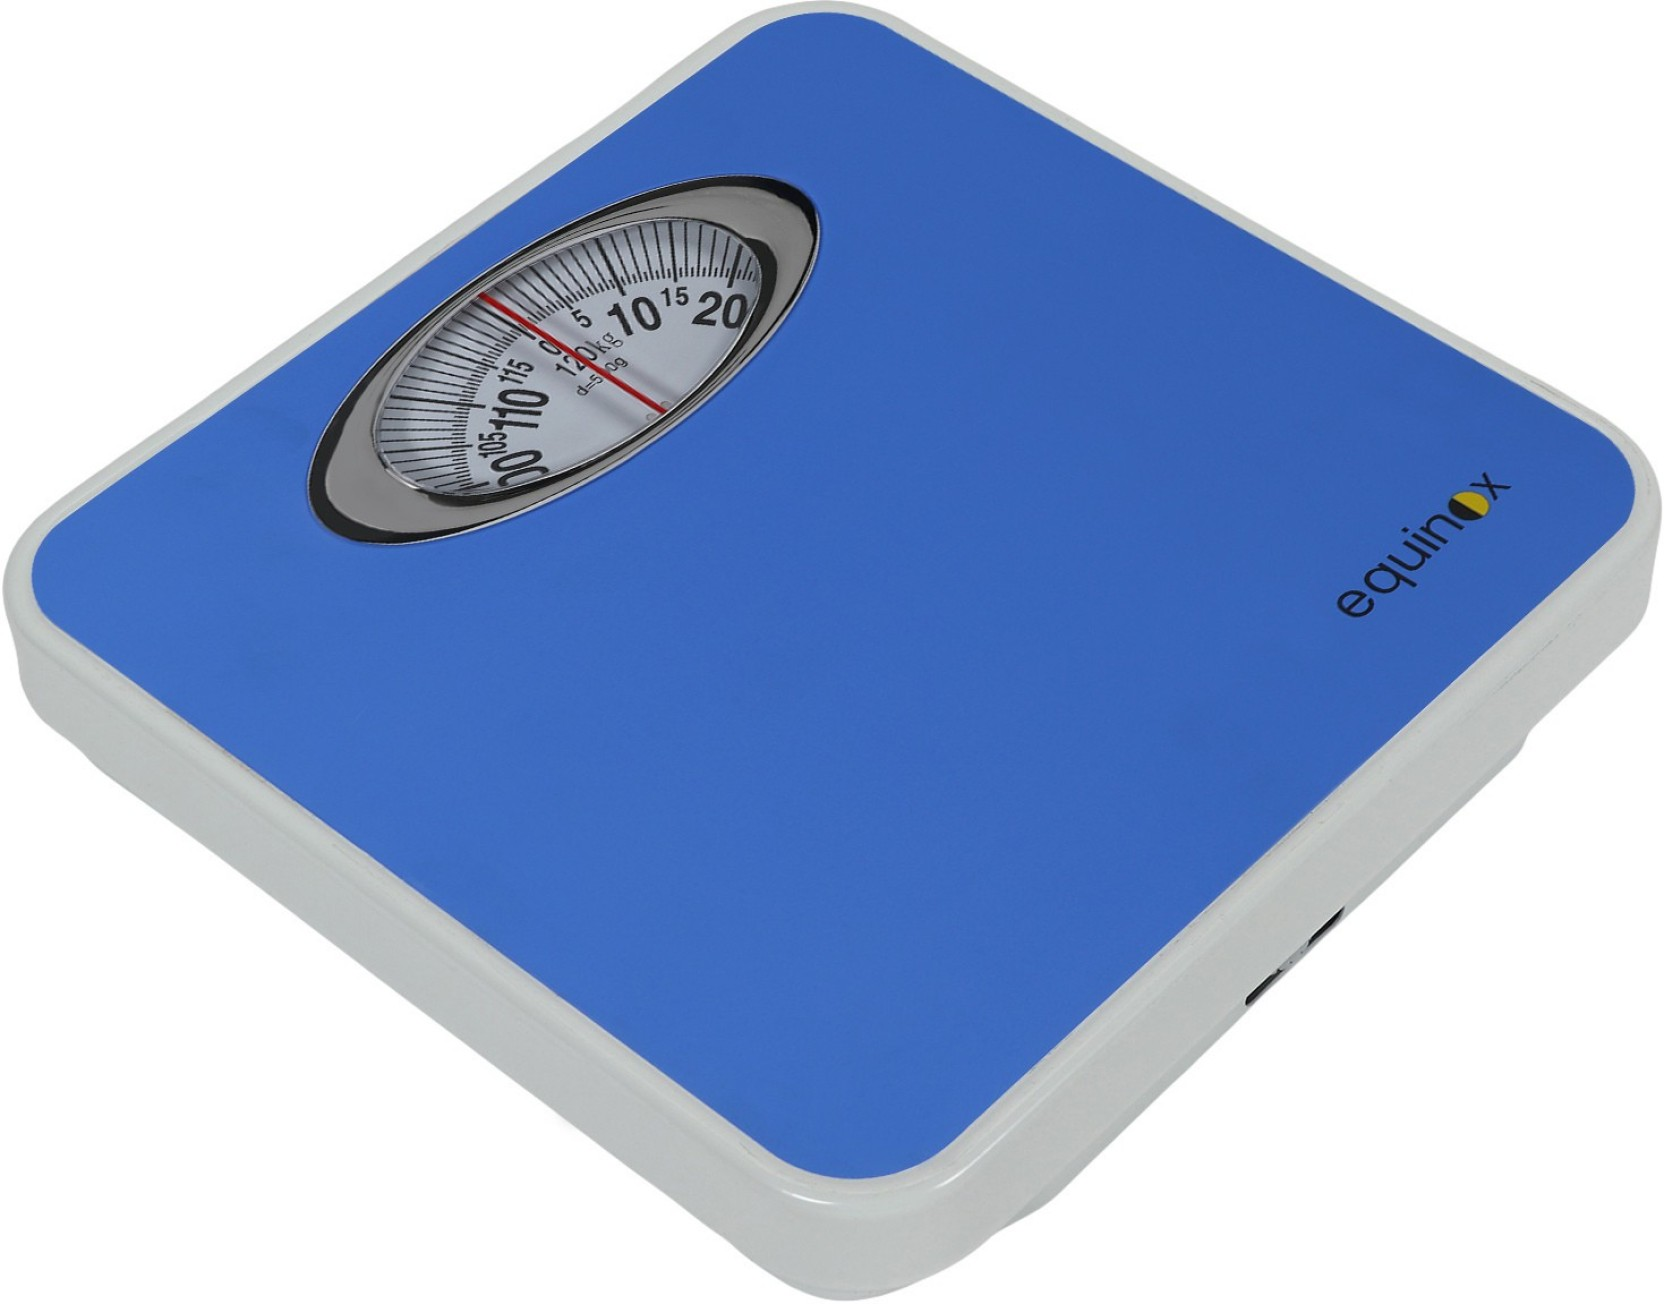 Equinox BR-9015 Weighing Scale Price in India - Buy